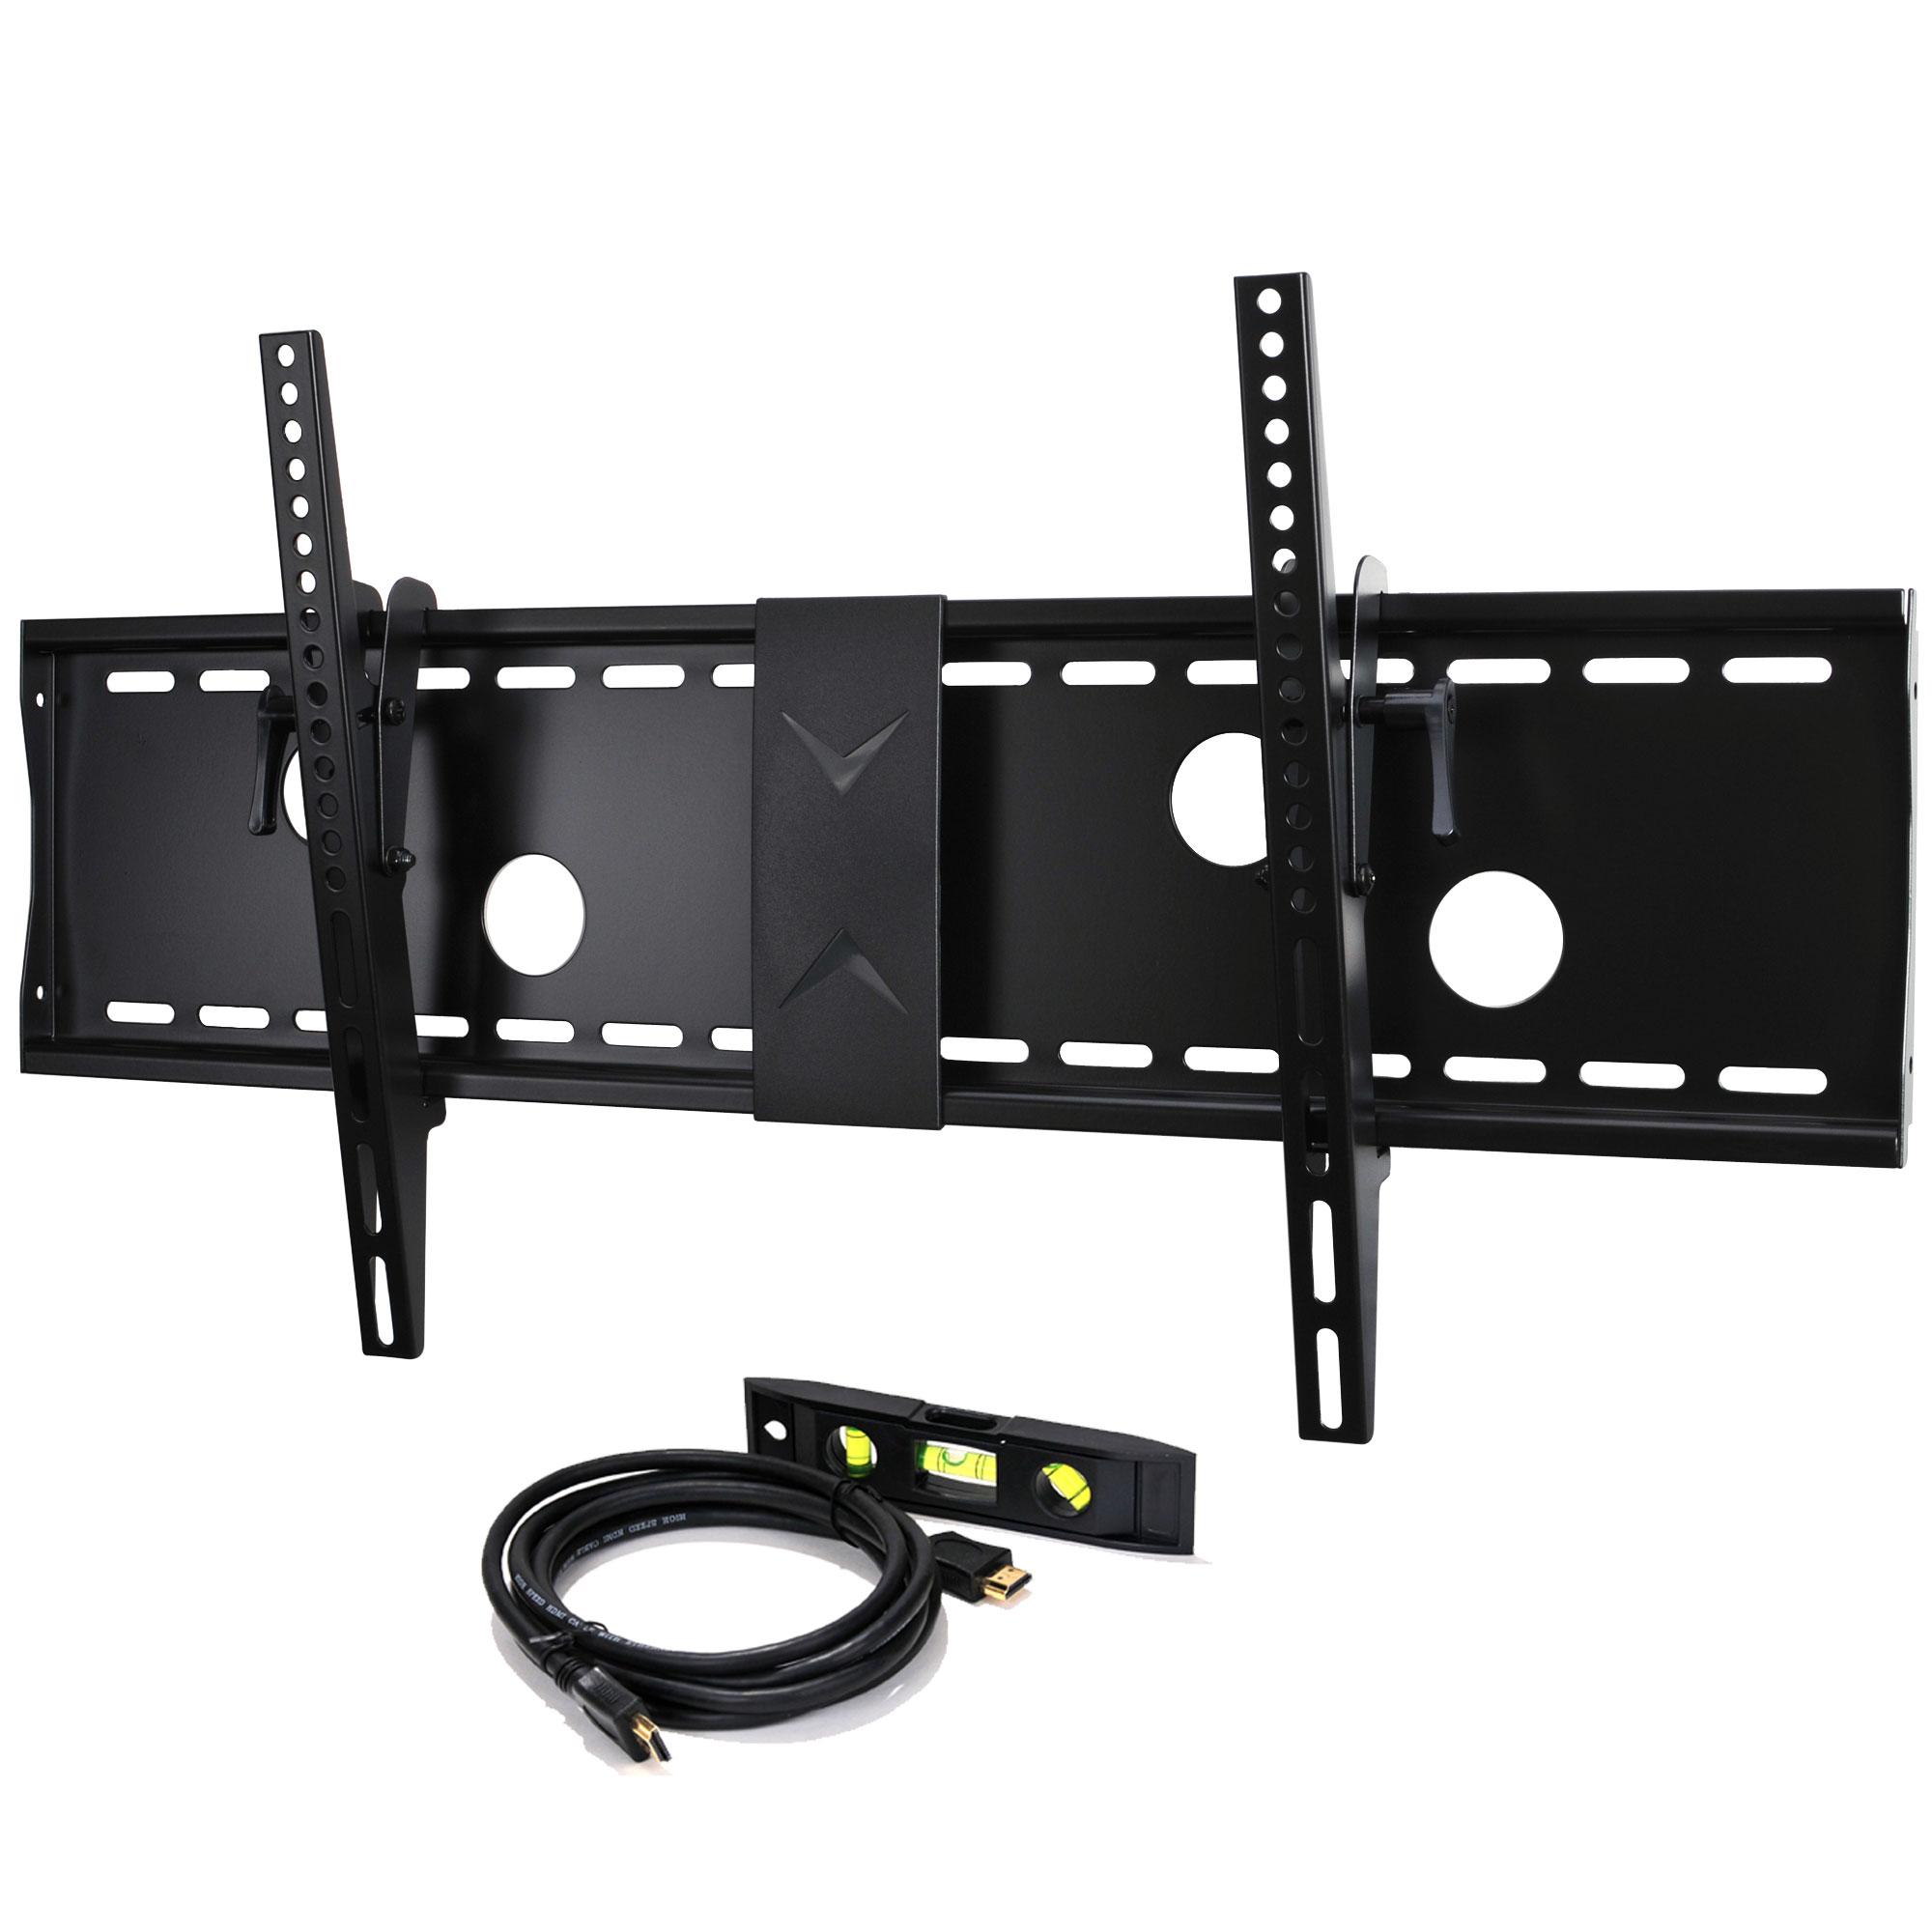 "VideoSecu Universal Tilt TV Wall Mount for VIZIO 39 40 42 43 46 47 48 50 51 55 58 60 64 65 75"" LED LCD Plasma HDTV BG9"